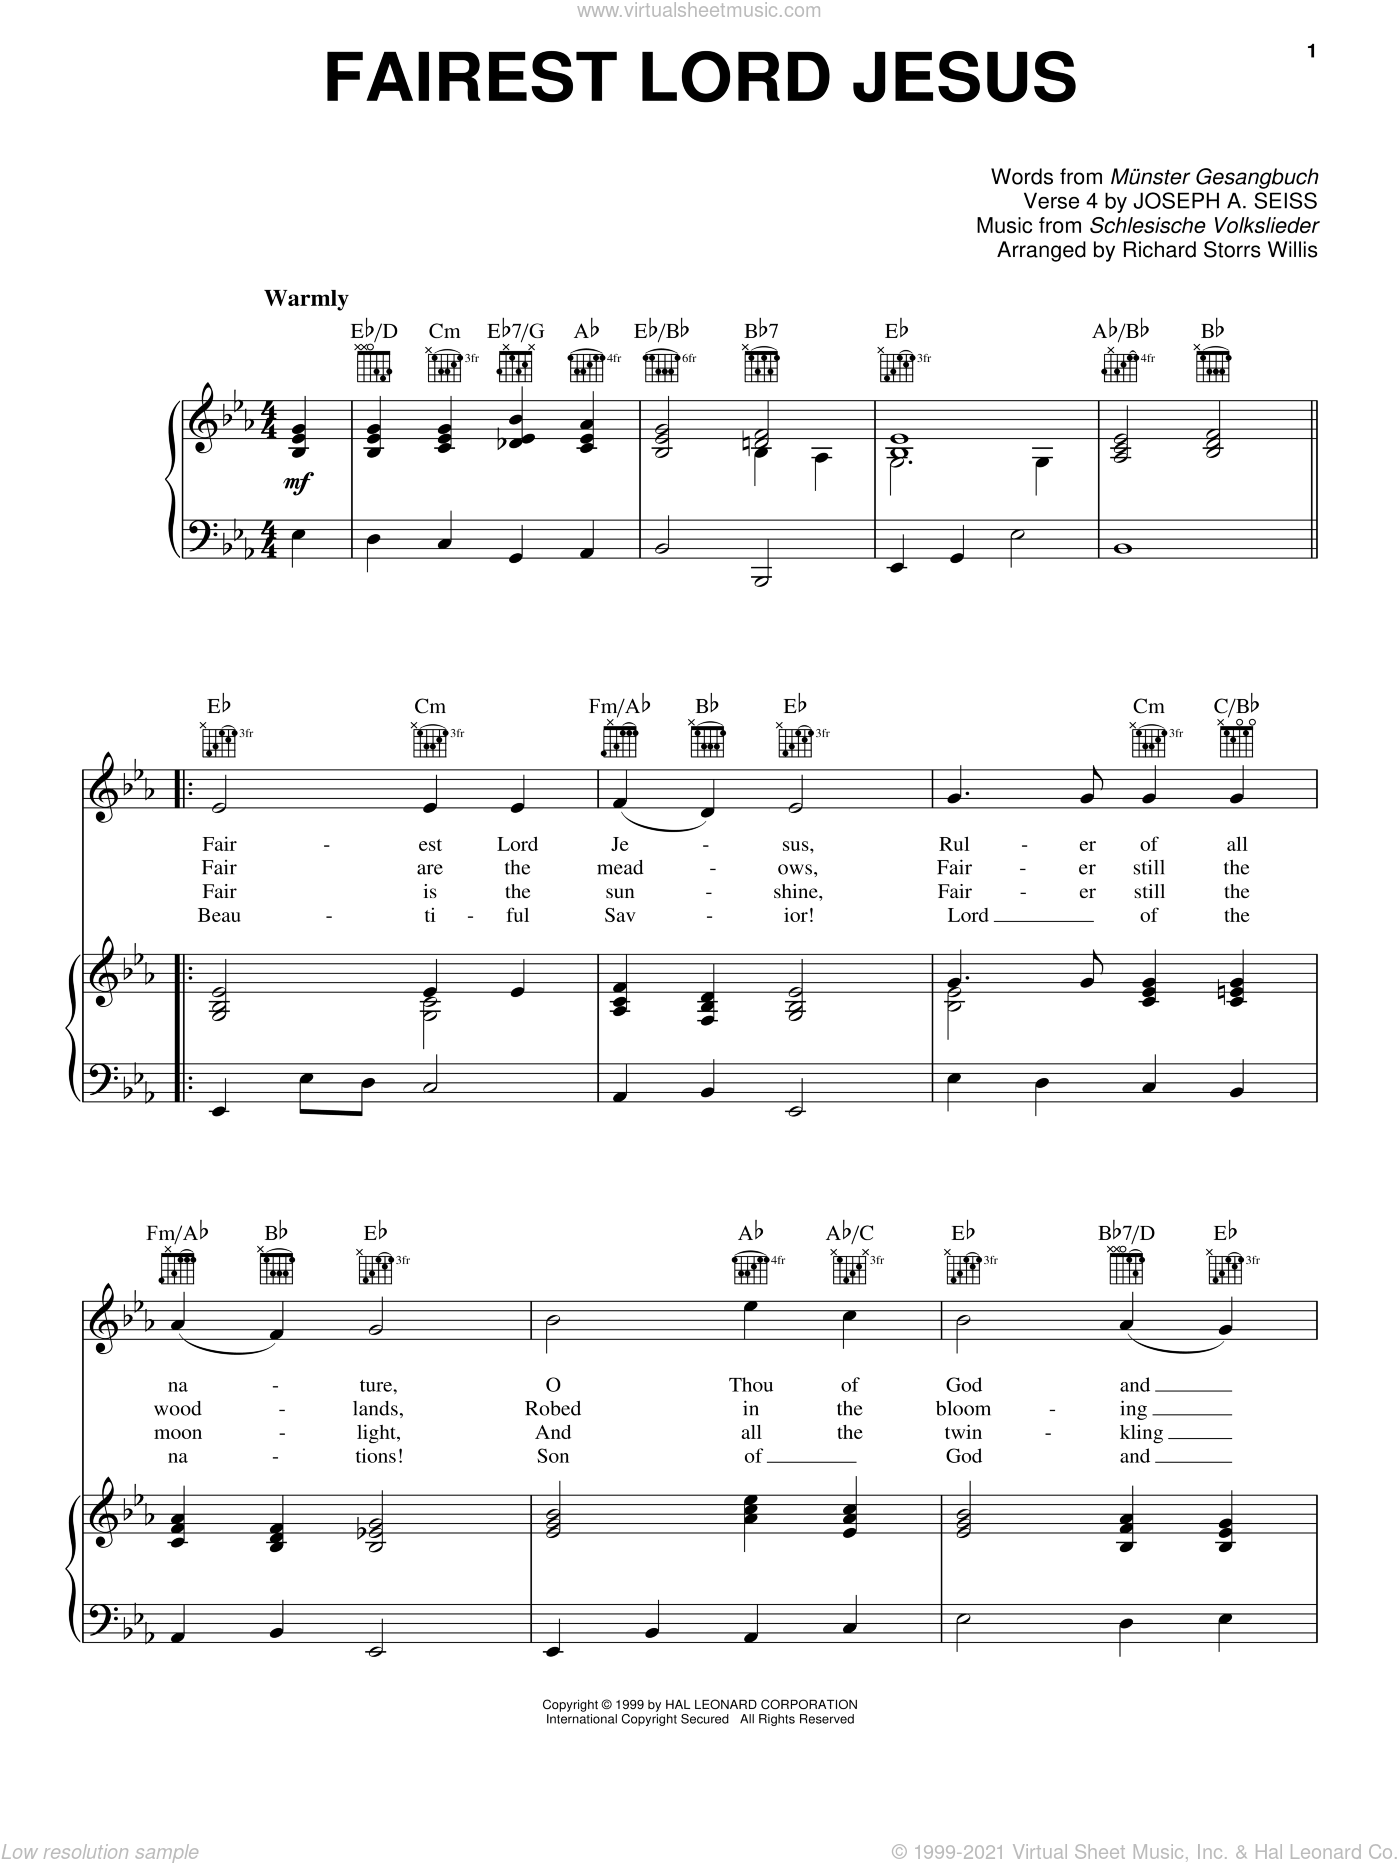 Fairest Lord Jesus sheet music for voice, piano or guitar by Schlesische Volkslieder, Joseph August Seiss, Munster Gesangbuch and Richard Storrs Willis. Score Image Preview.